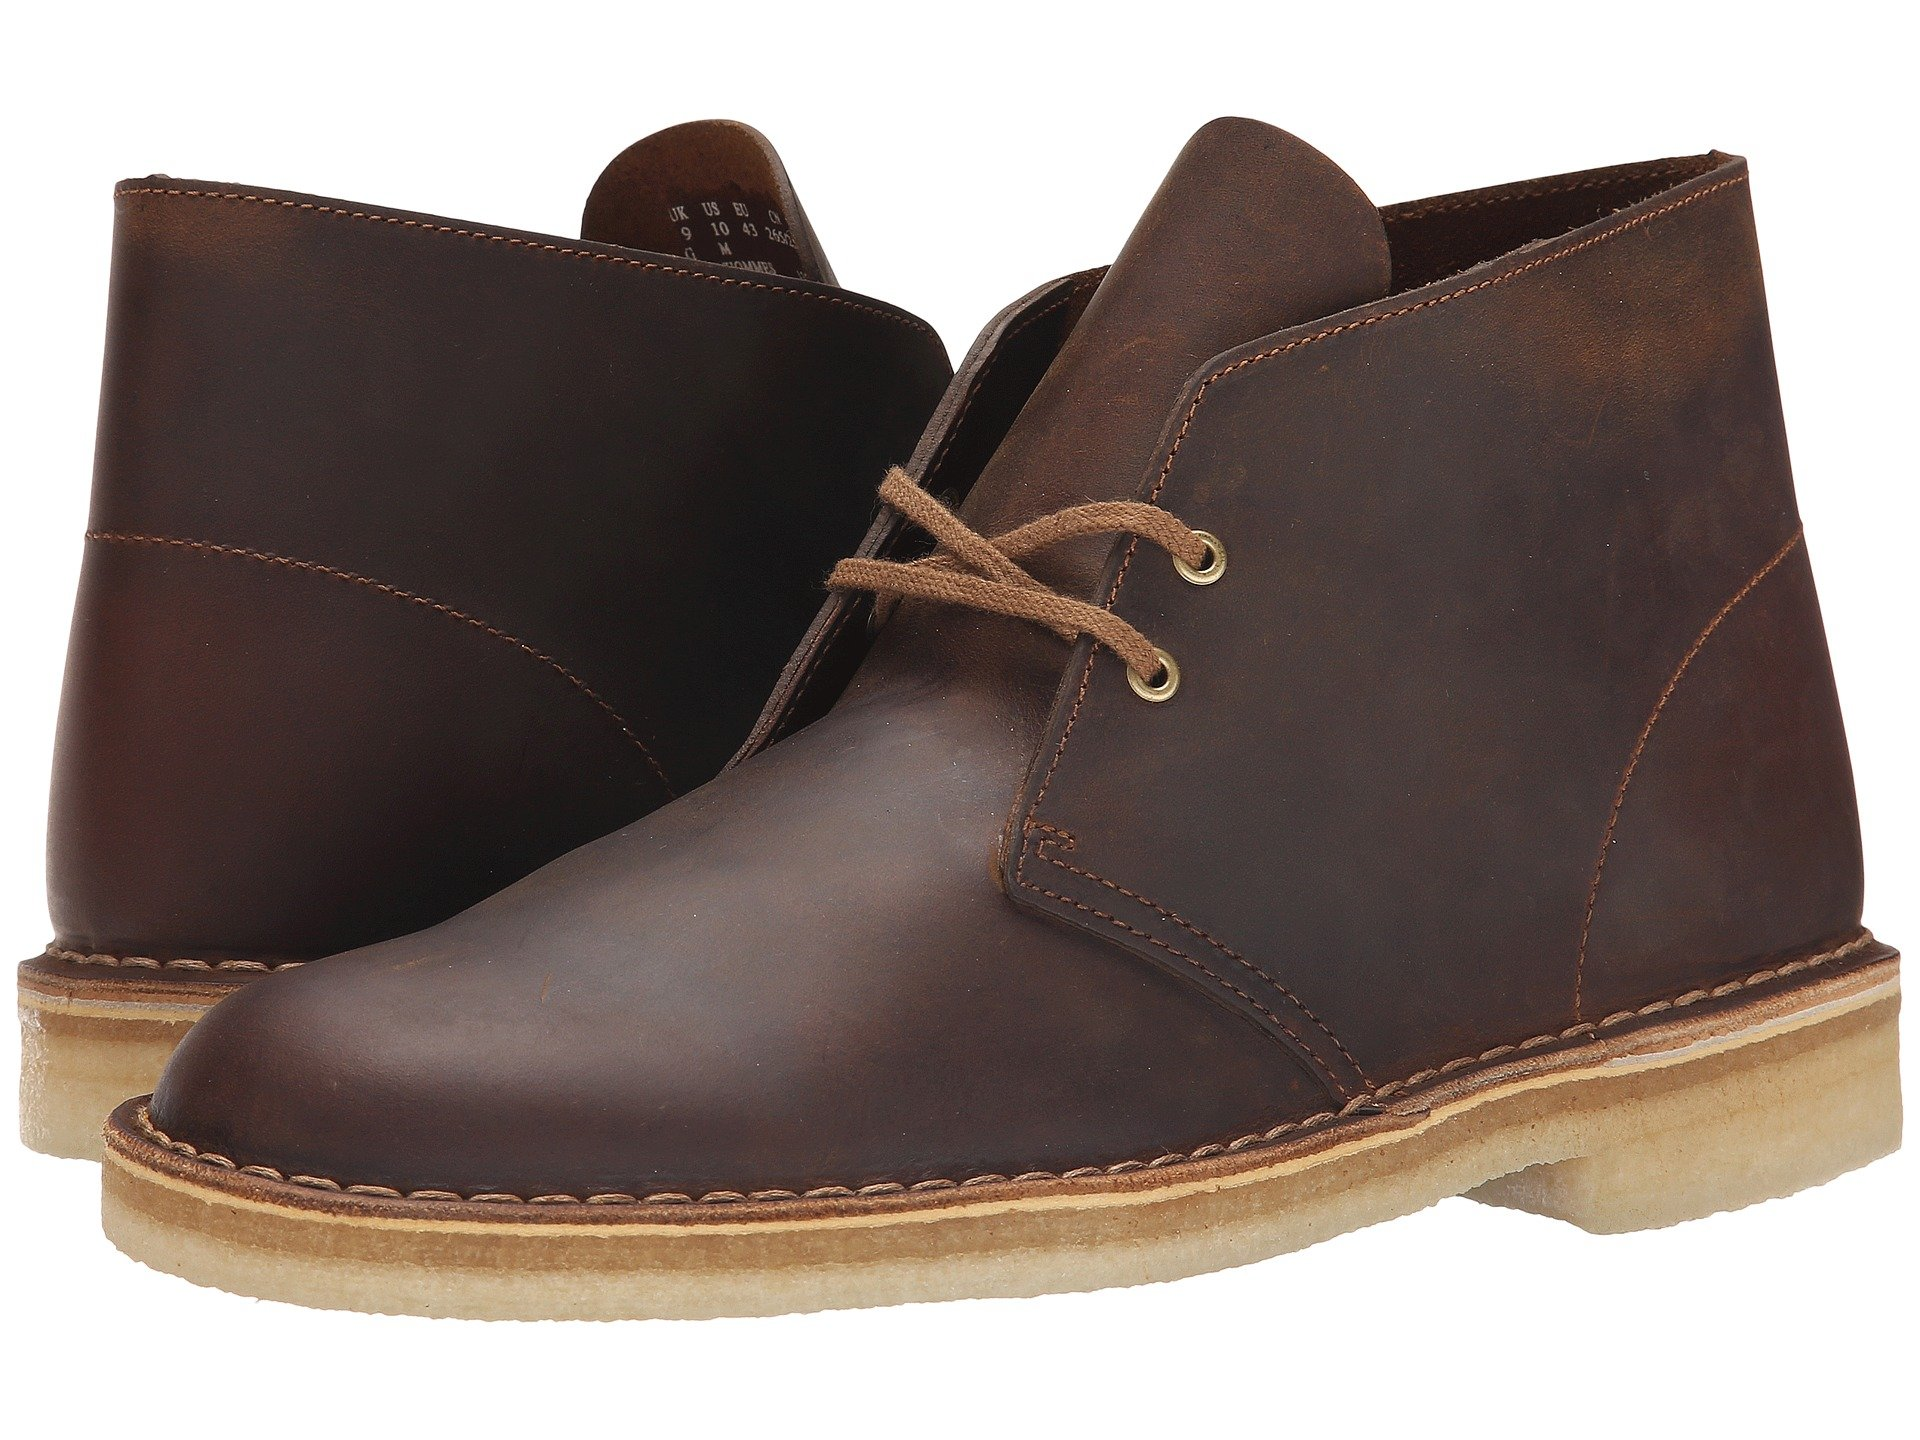 mens shoes boots VLBTYTA